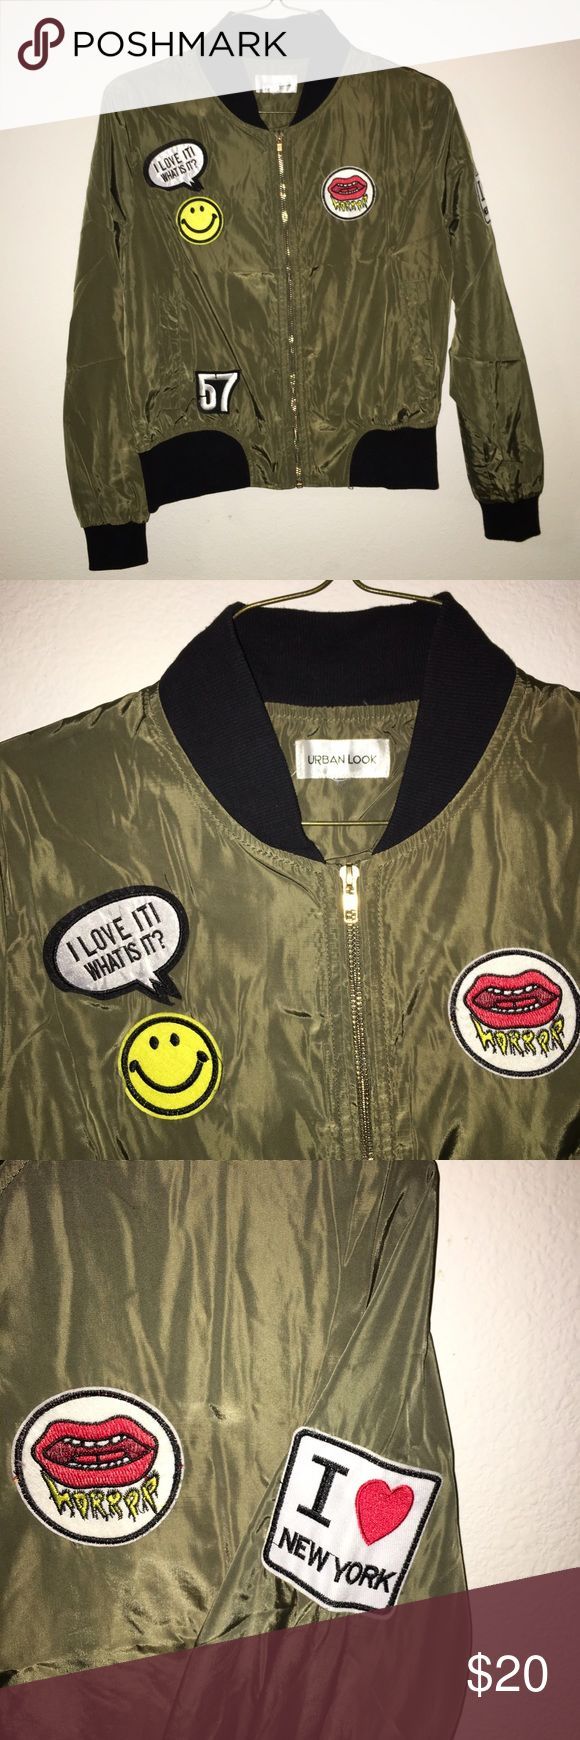 Women's Green Patched Bomber Jacket Women's bomber jacket size small, Urban look brand. Amazing condition! All perfect except some strings on the tag. (light weight!) Jackets & Coats Puffers